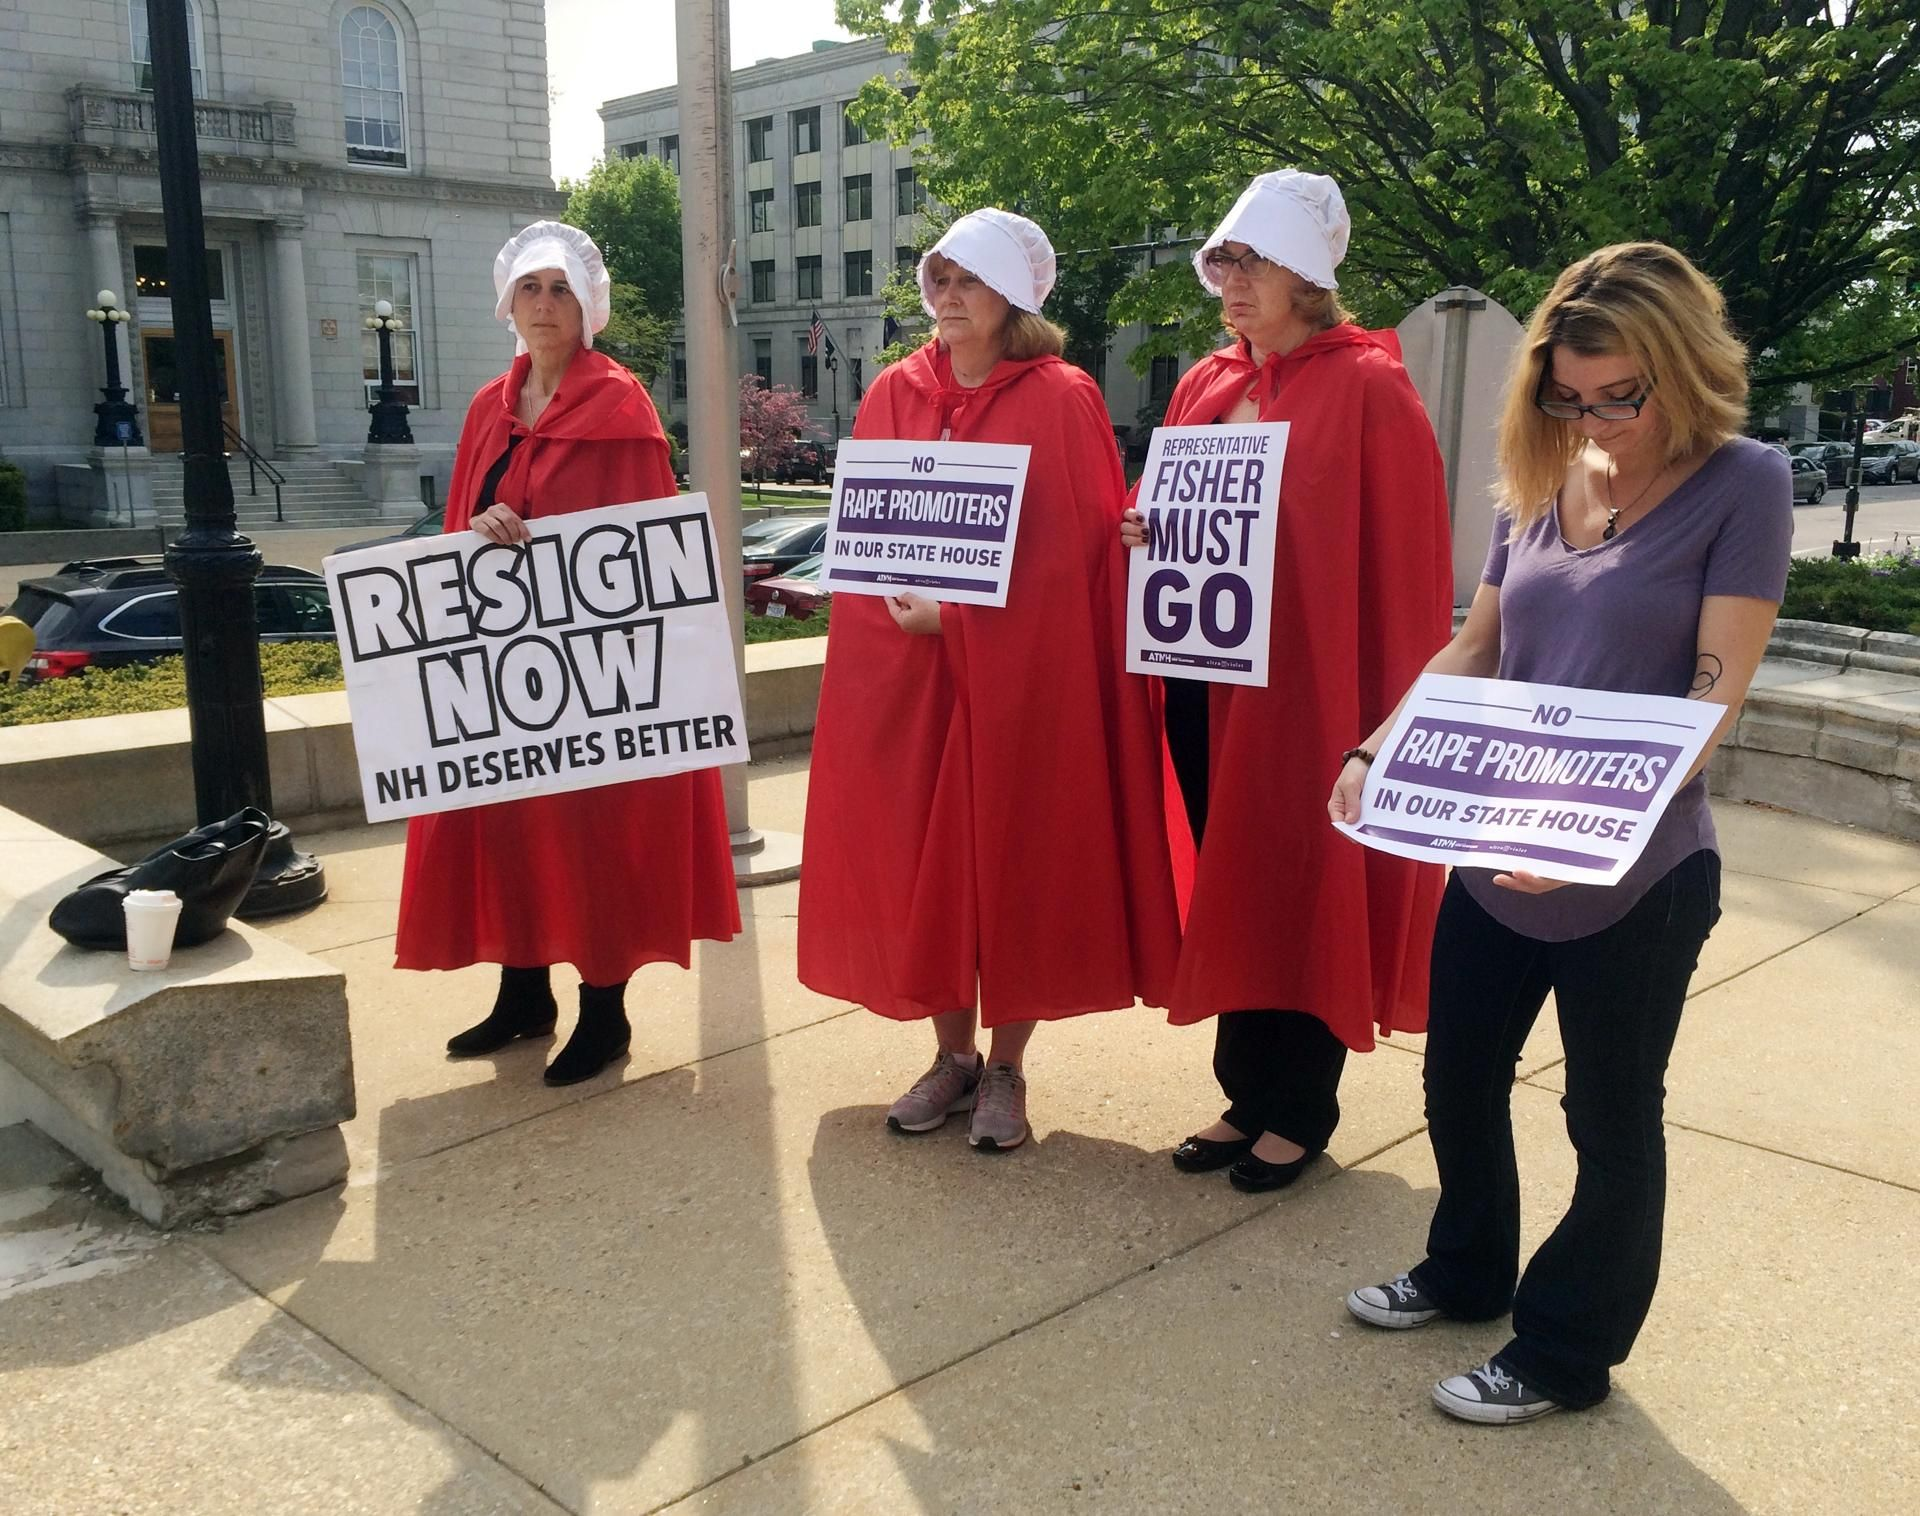 A New Look For Women S Rights Protests Handmaid S Tale Cloaks And Bonnets The Boston Globe Looking For Women Women Women S Rights